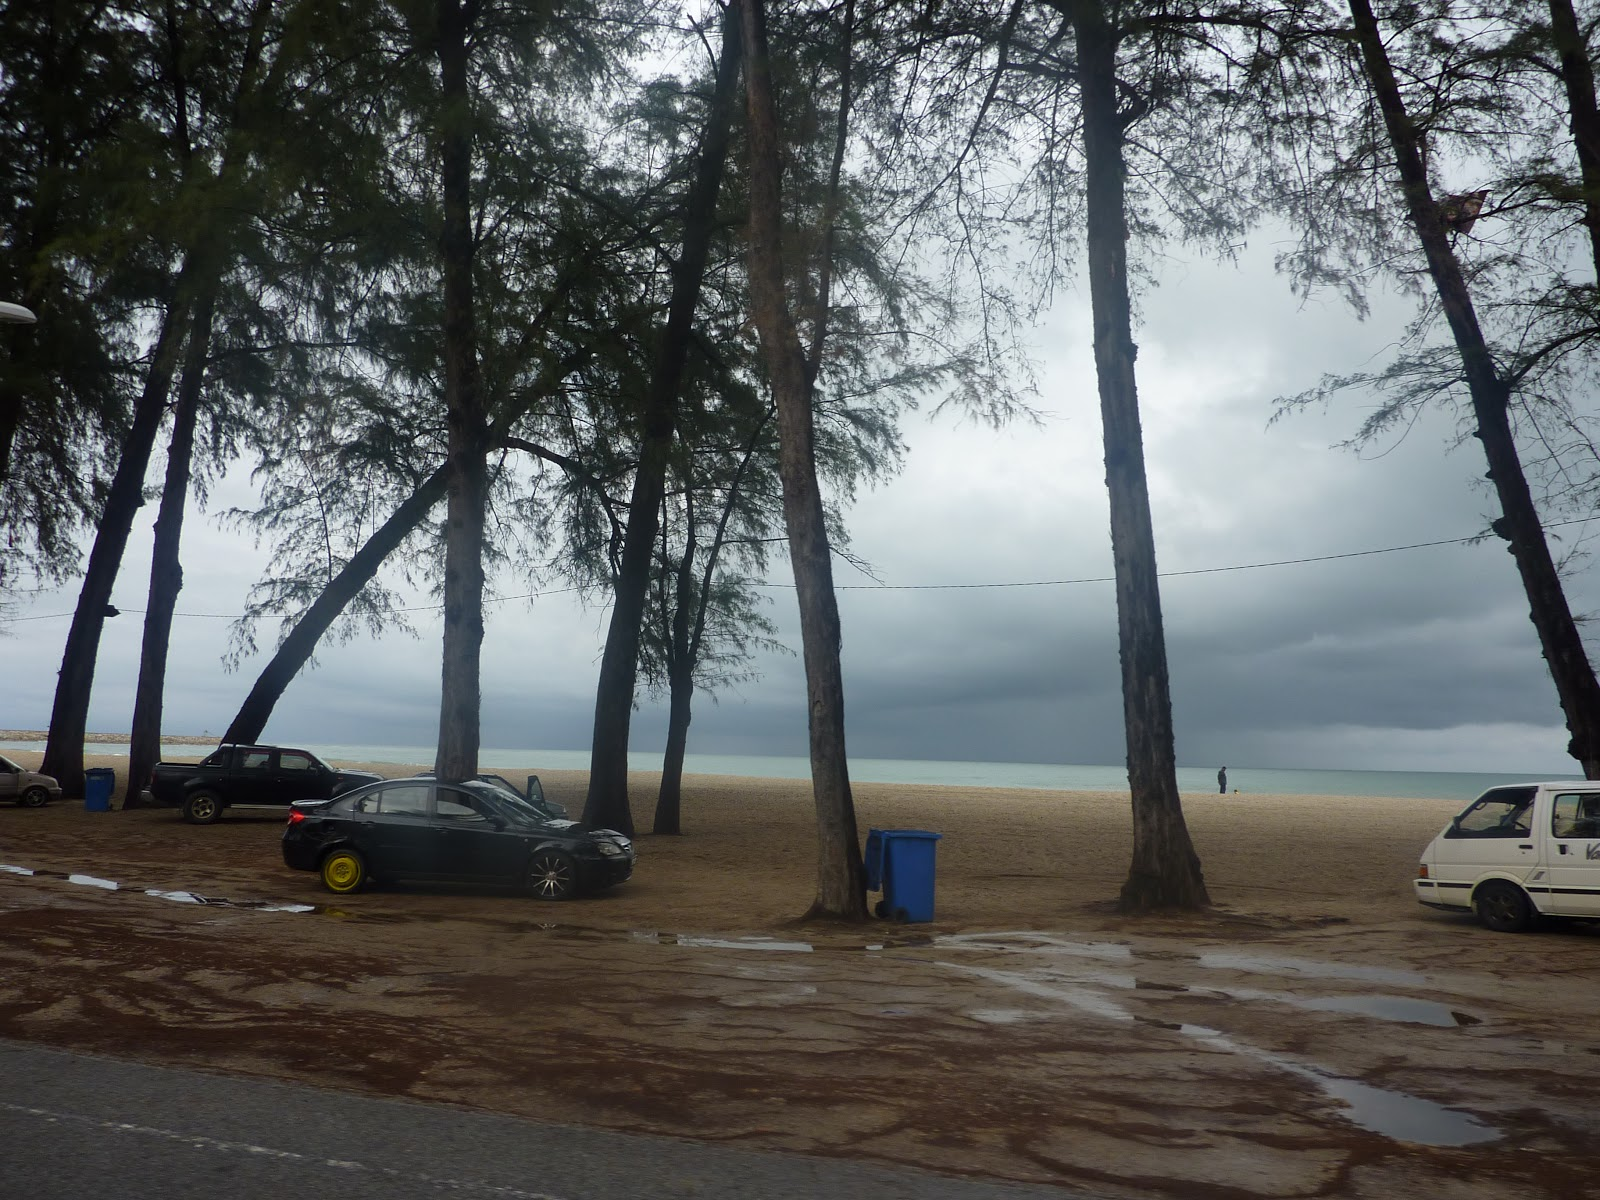 Terengganu State has a lot places like this beach.